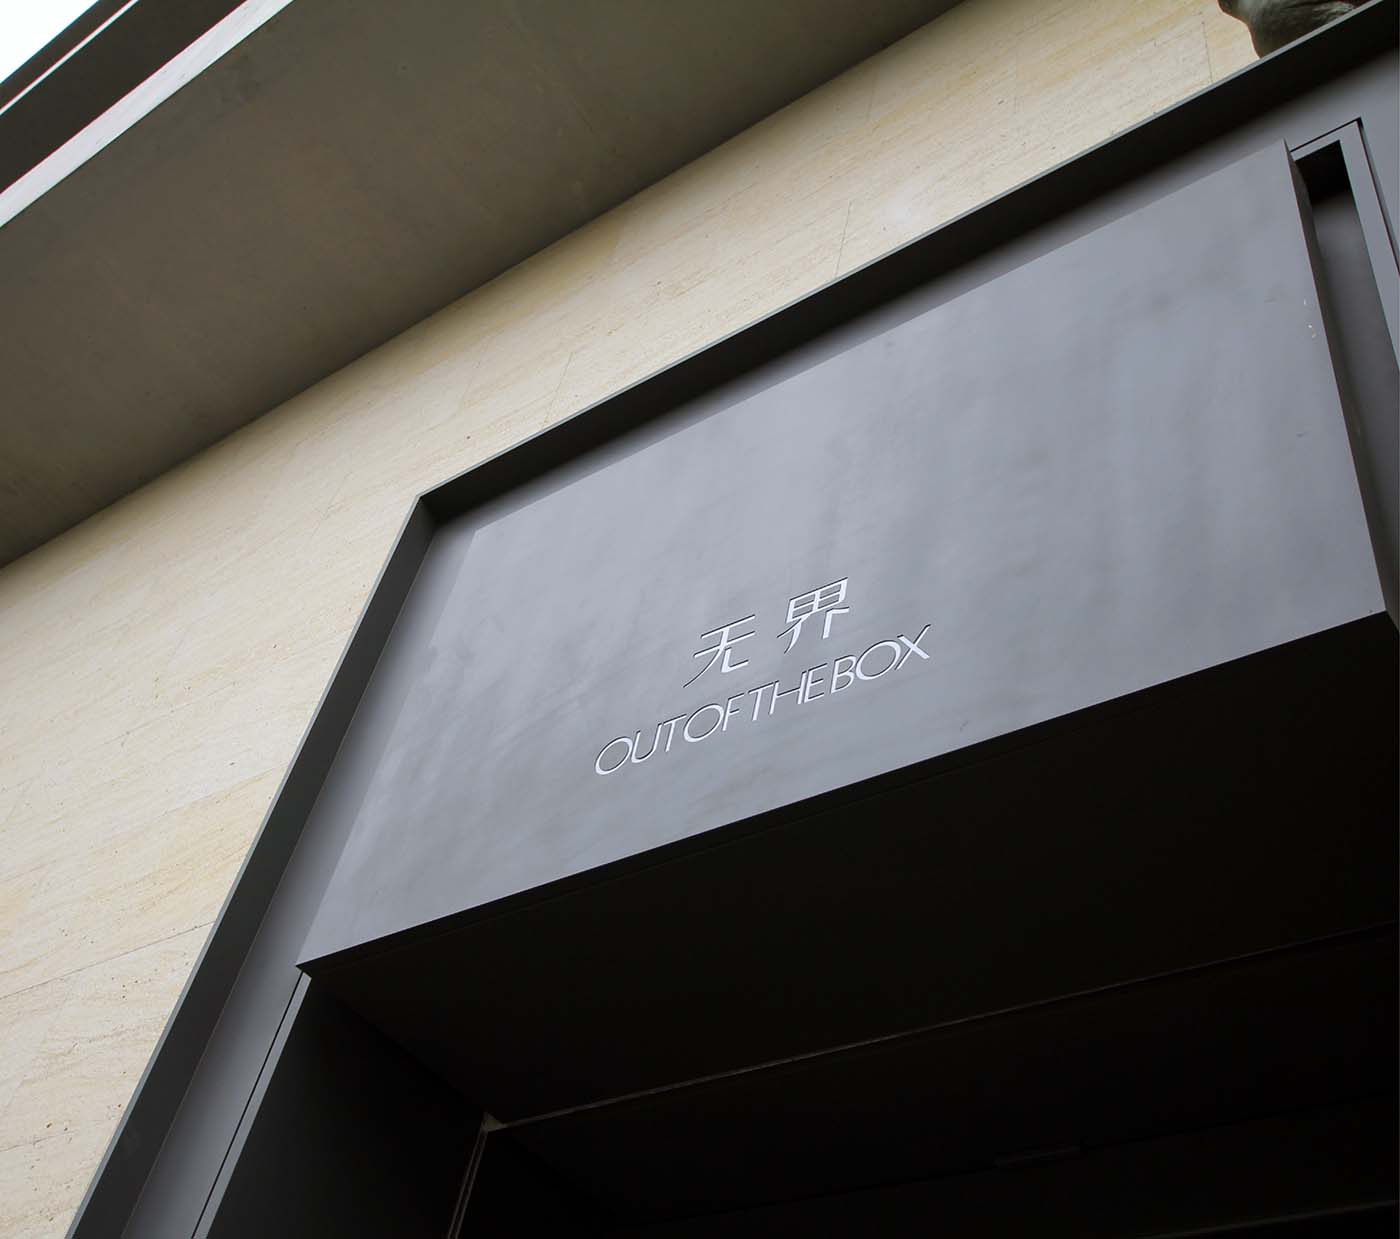 Close up of the exterior label of a Chinese retail shop with name on it.